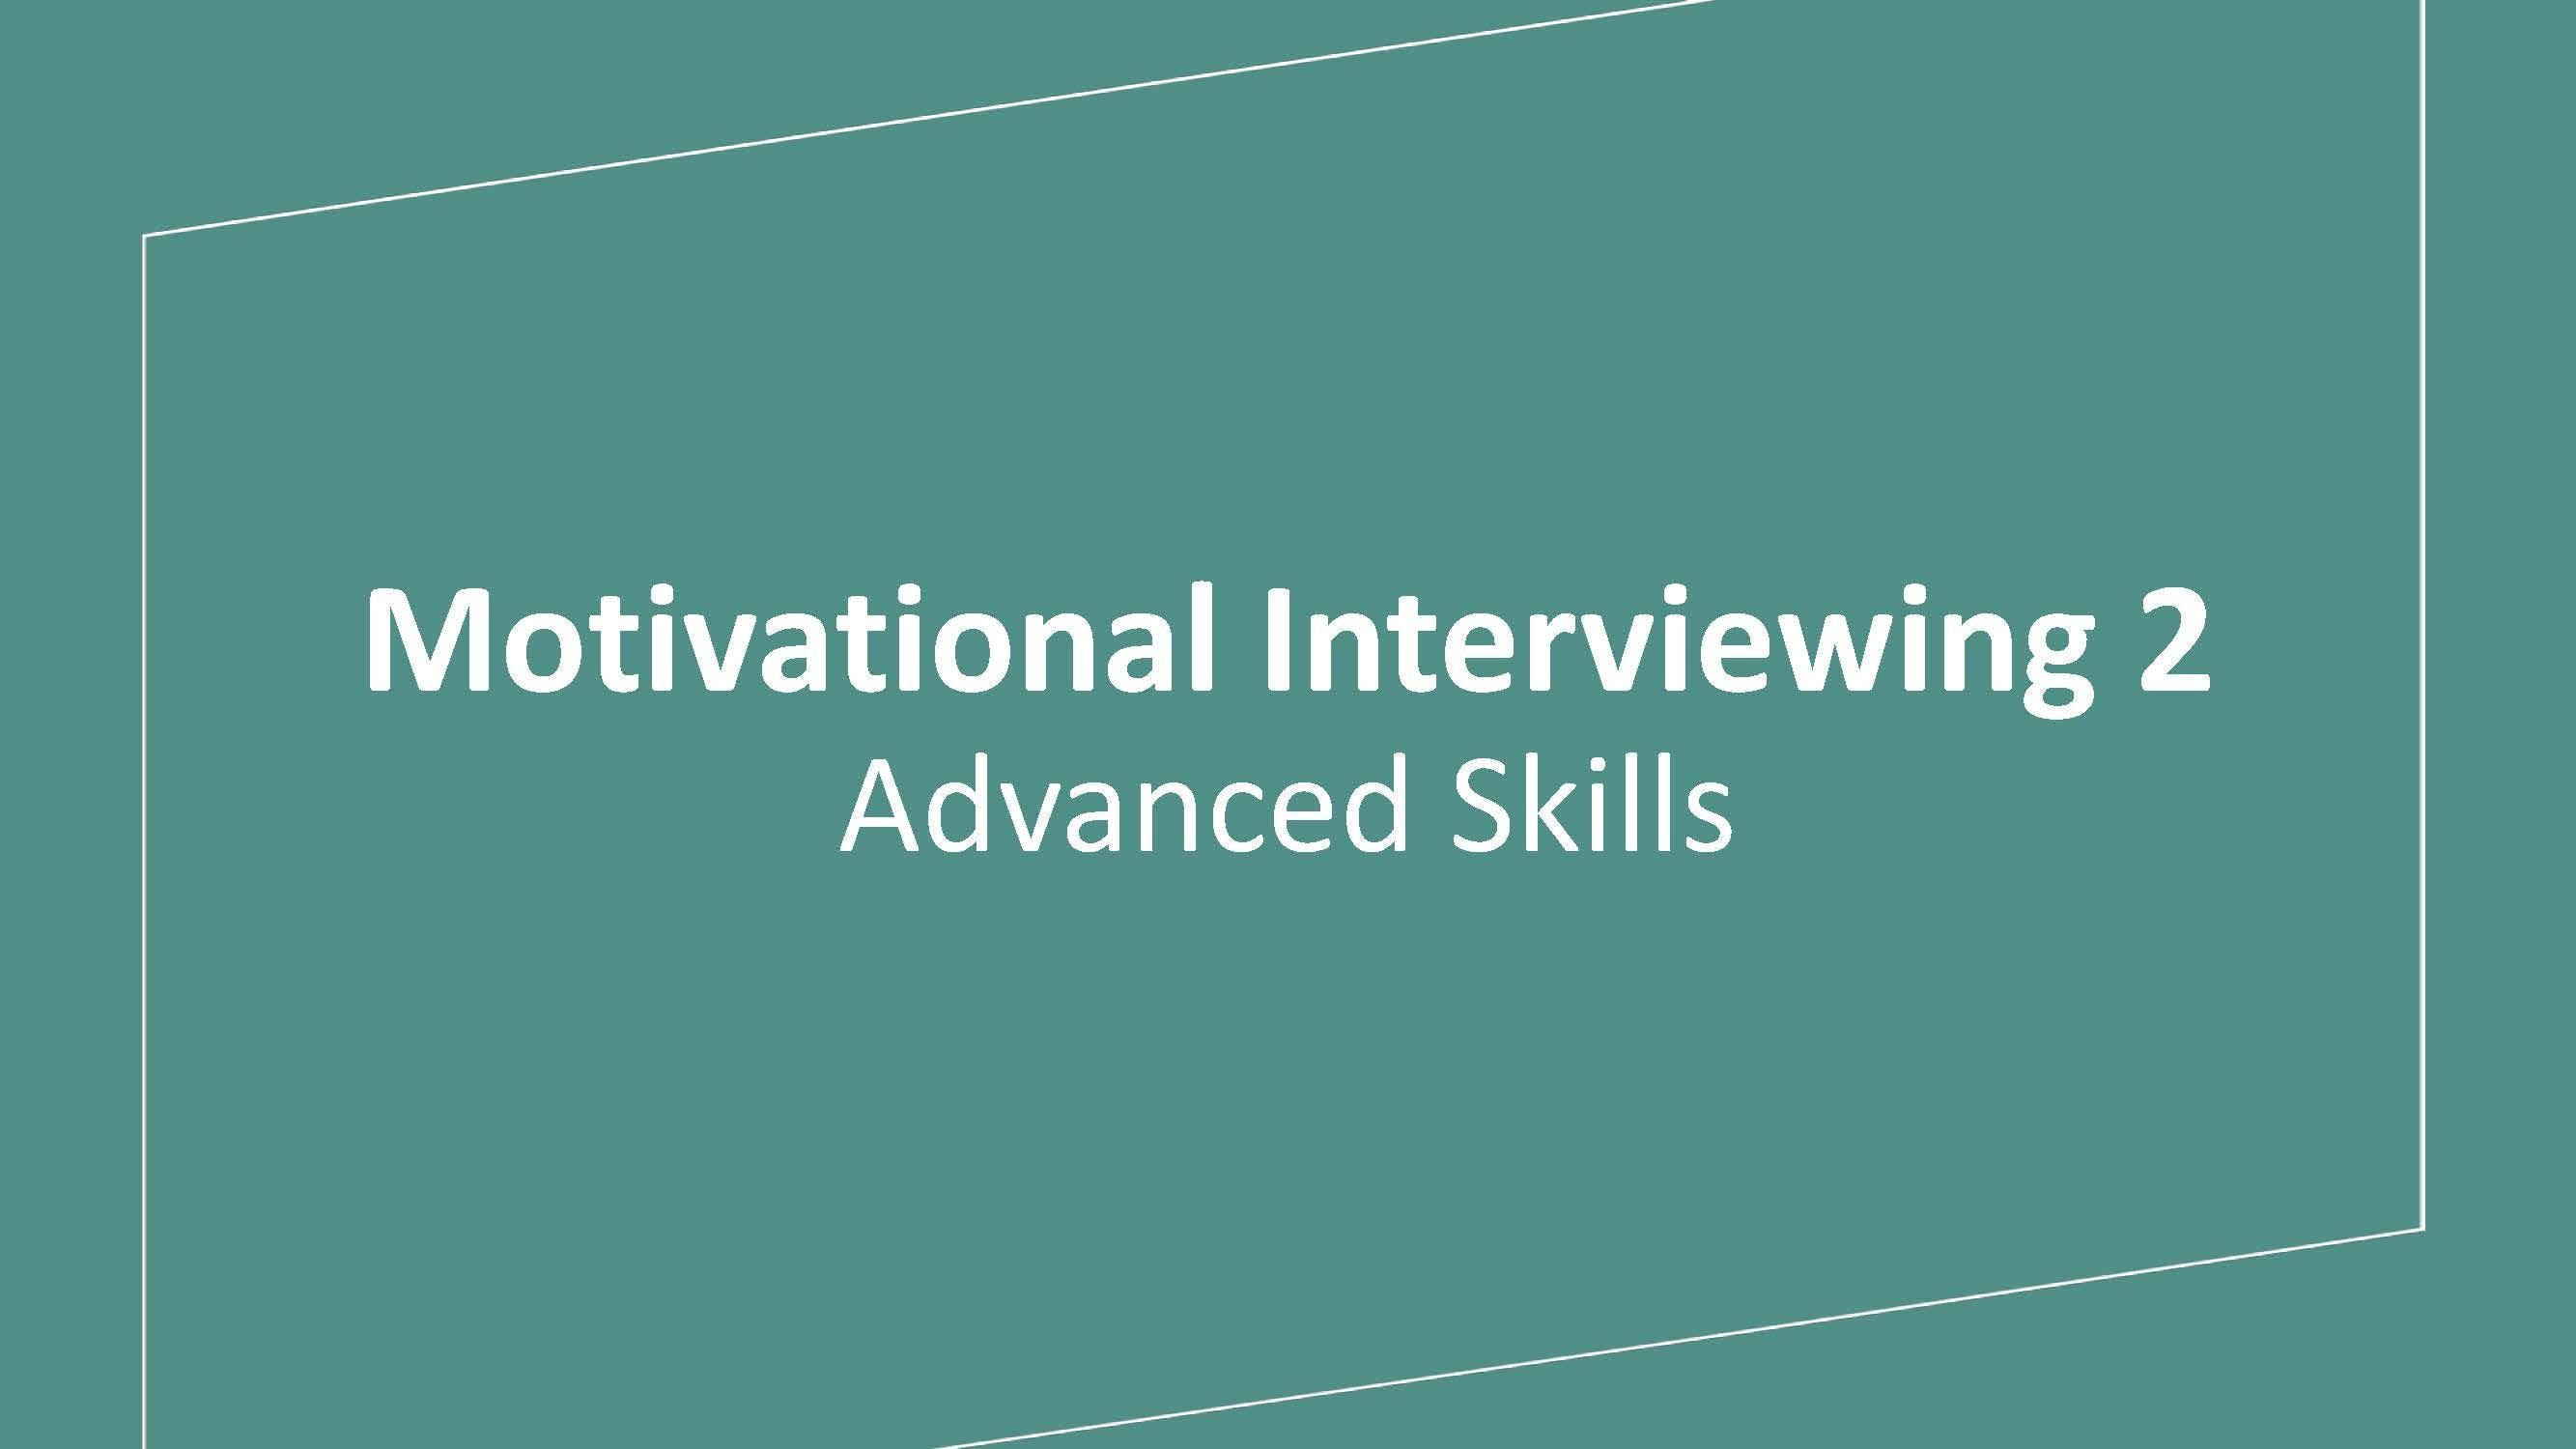 Motivational Interviewing 2: Advanced Skills